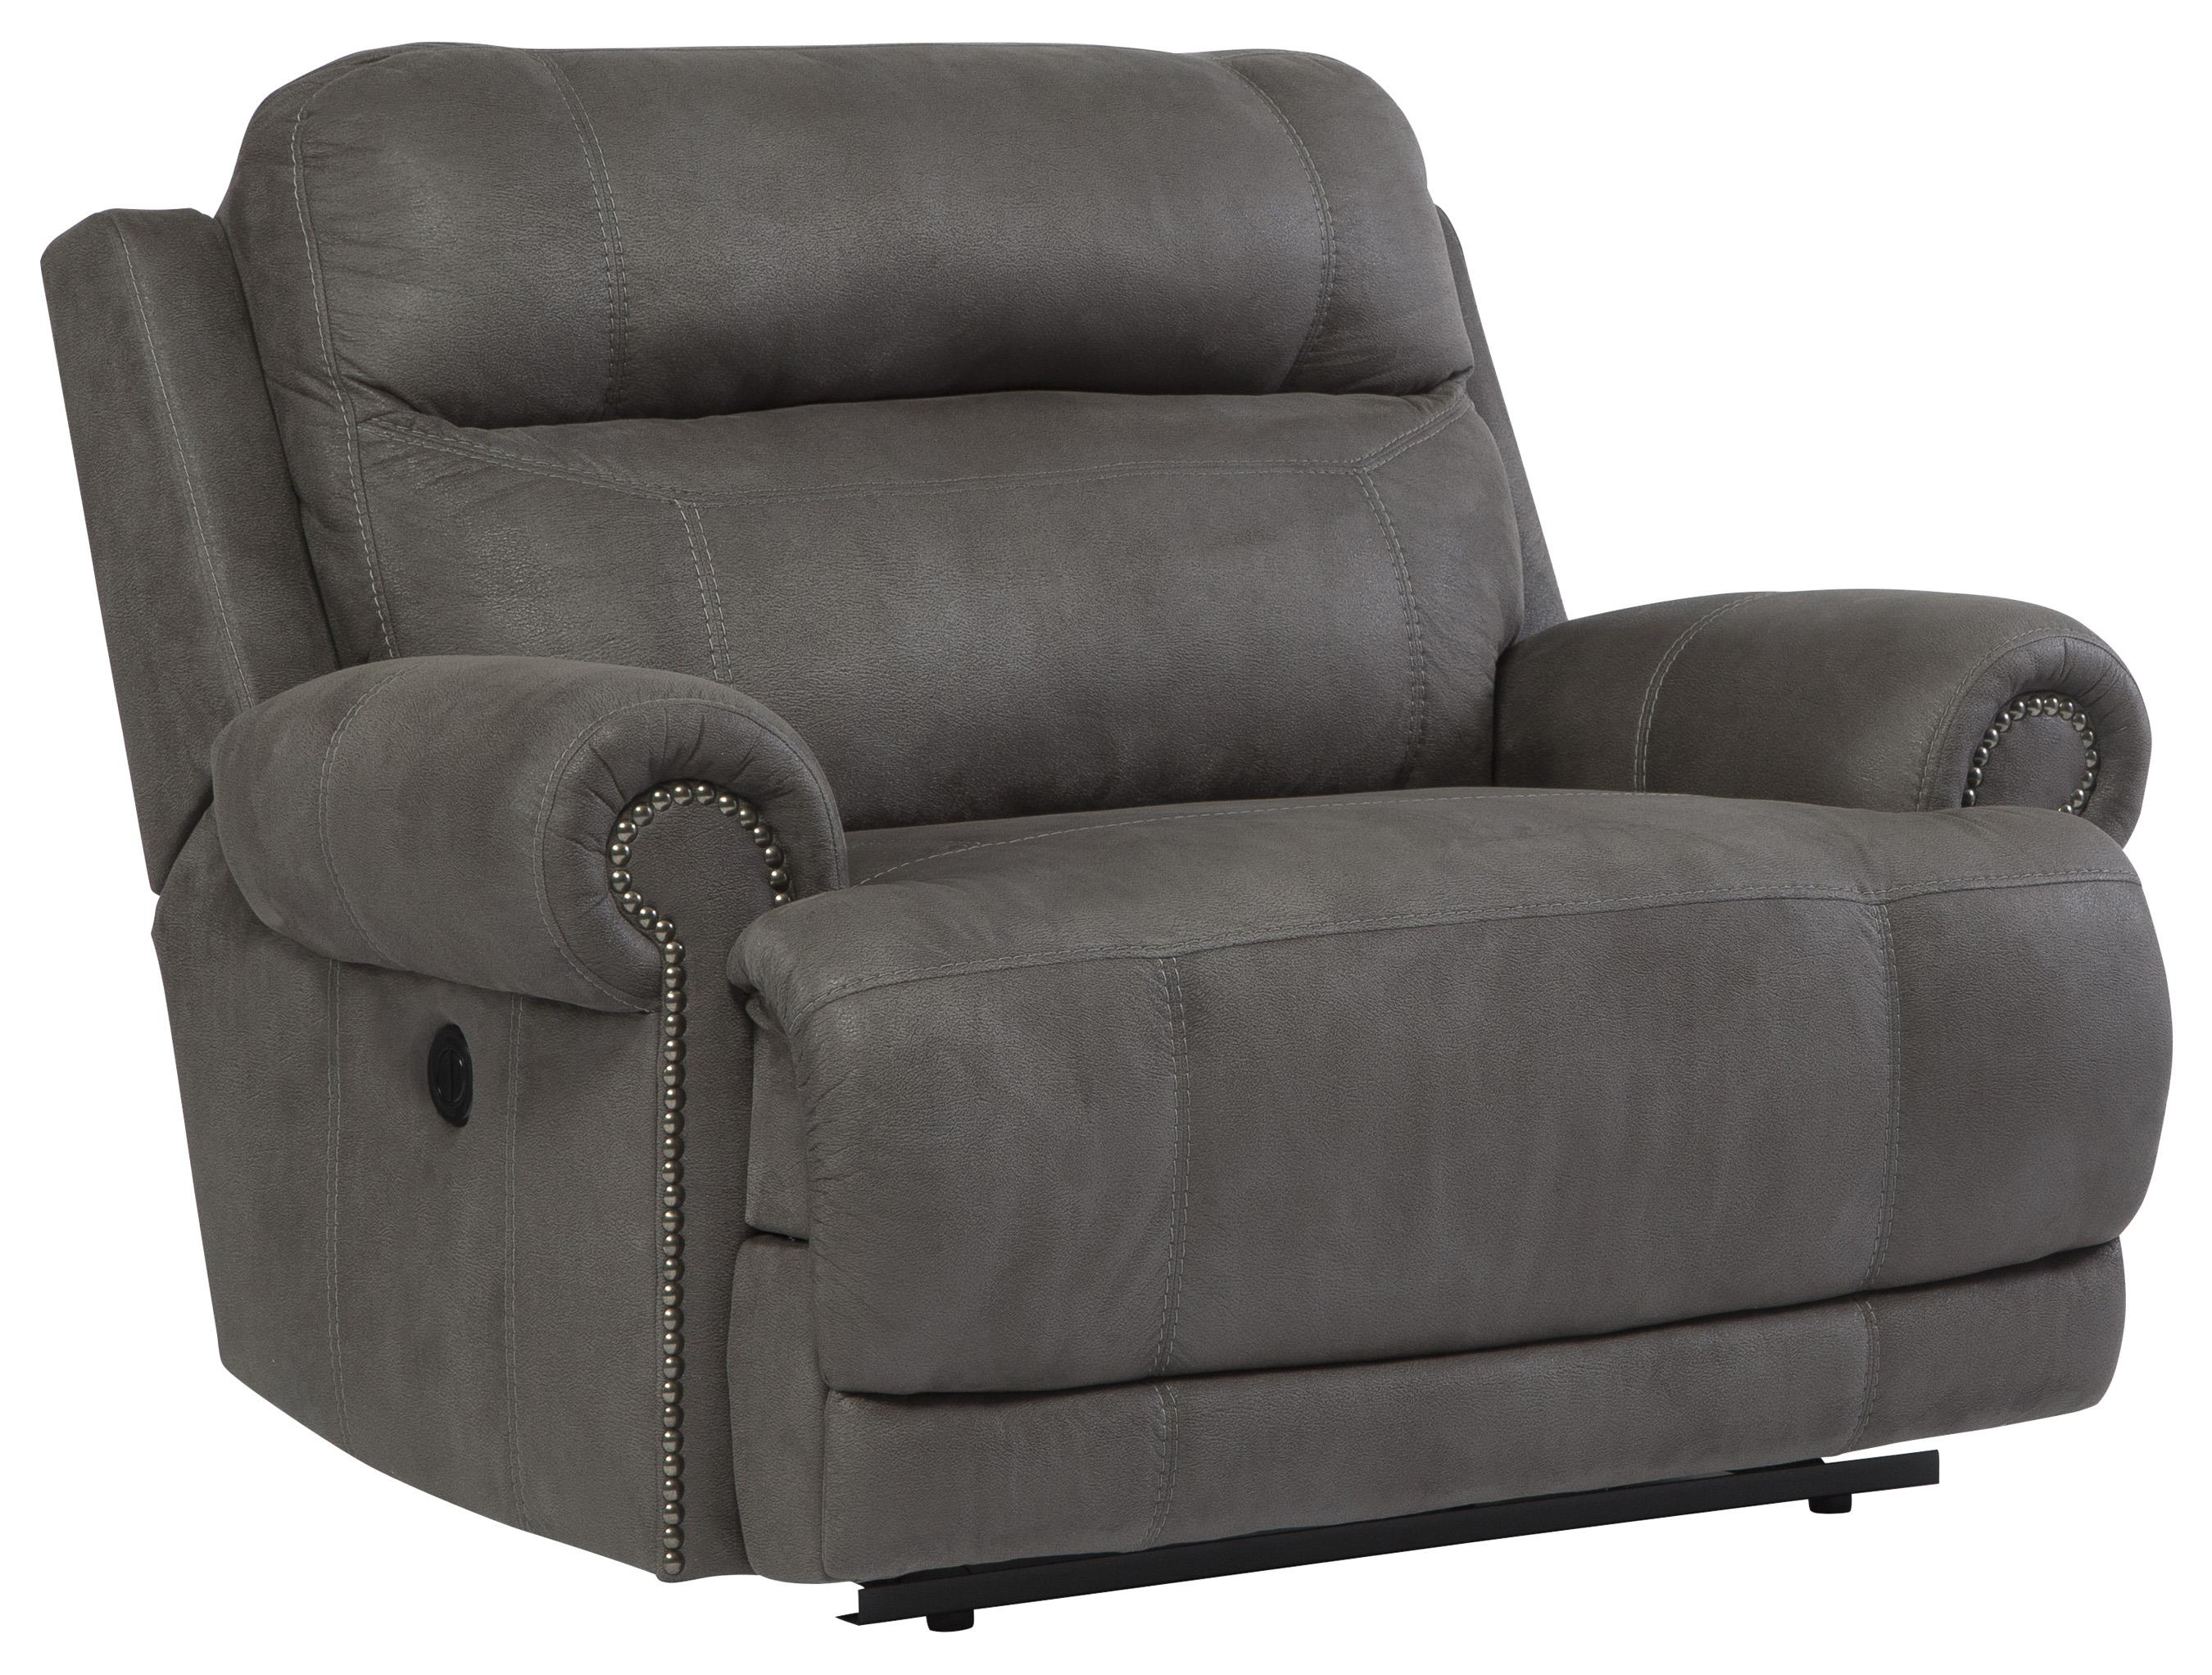 Austere - Gray Zero Wall Power Wide Recliner by Ashley Signature Design at Rooms and Rest